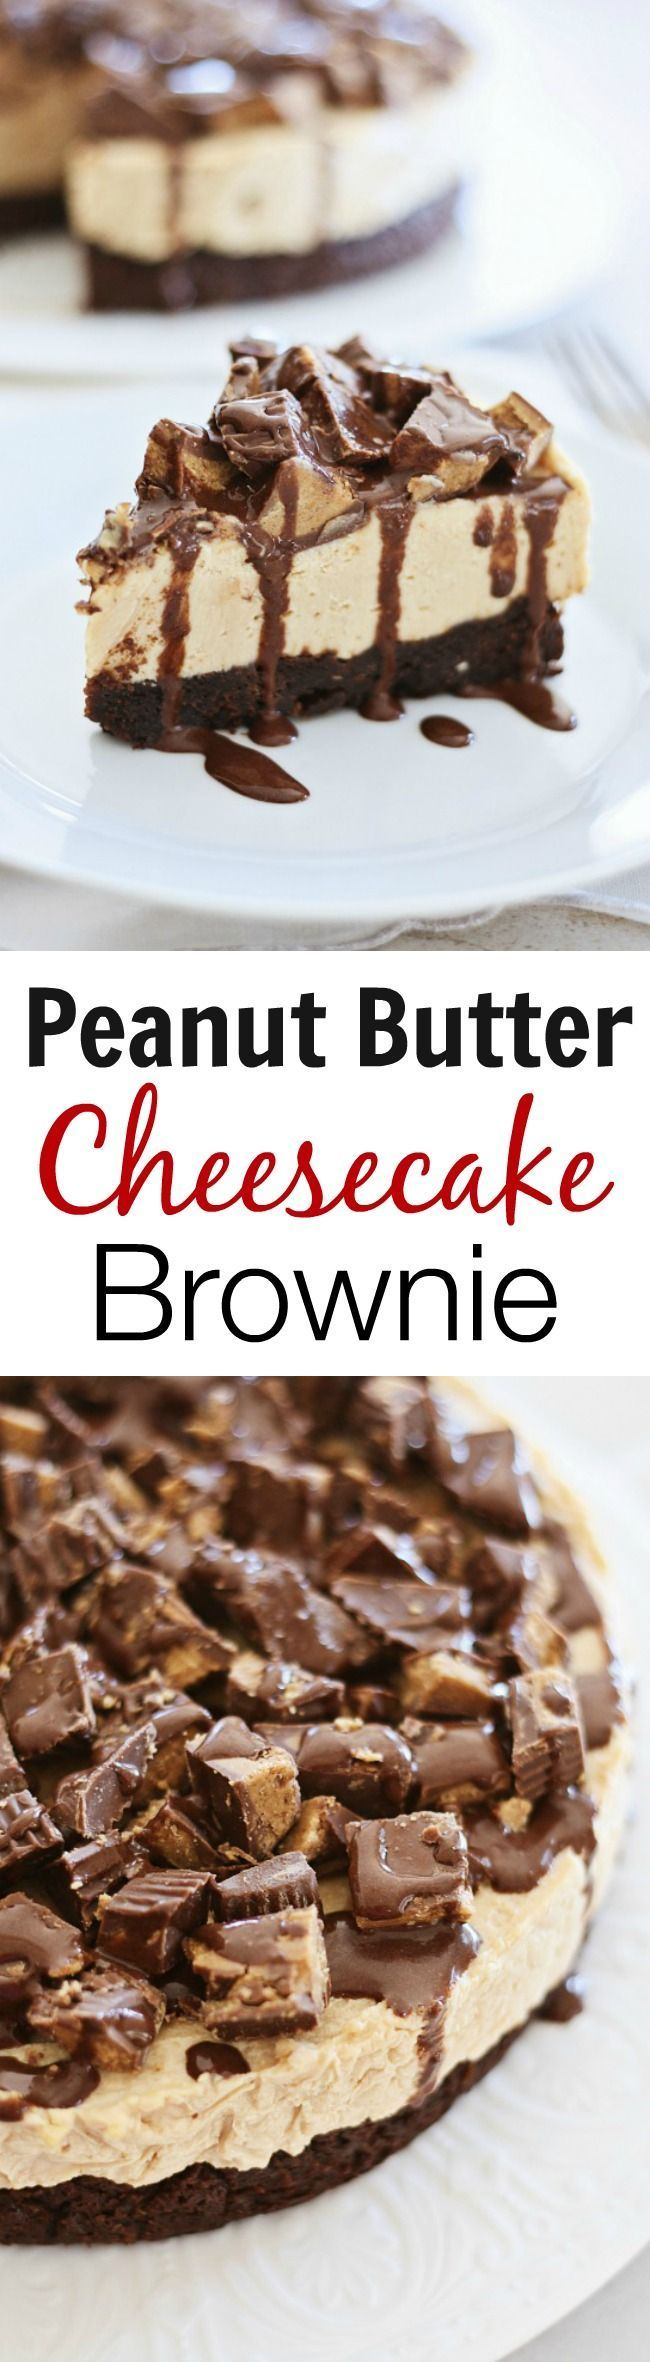 Peanut Butter Cheesecake Brownies - the best and most decadent dessert ever with deep dish peanut butter cheesecake on brownies | rasamalaysia.com